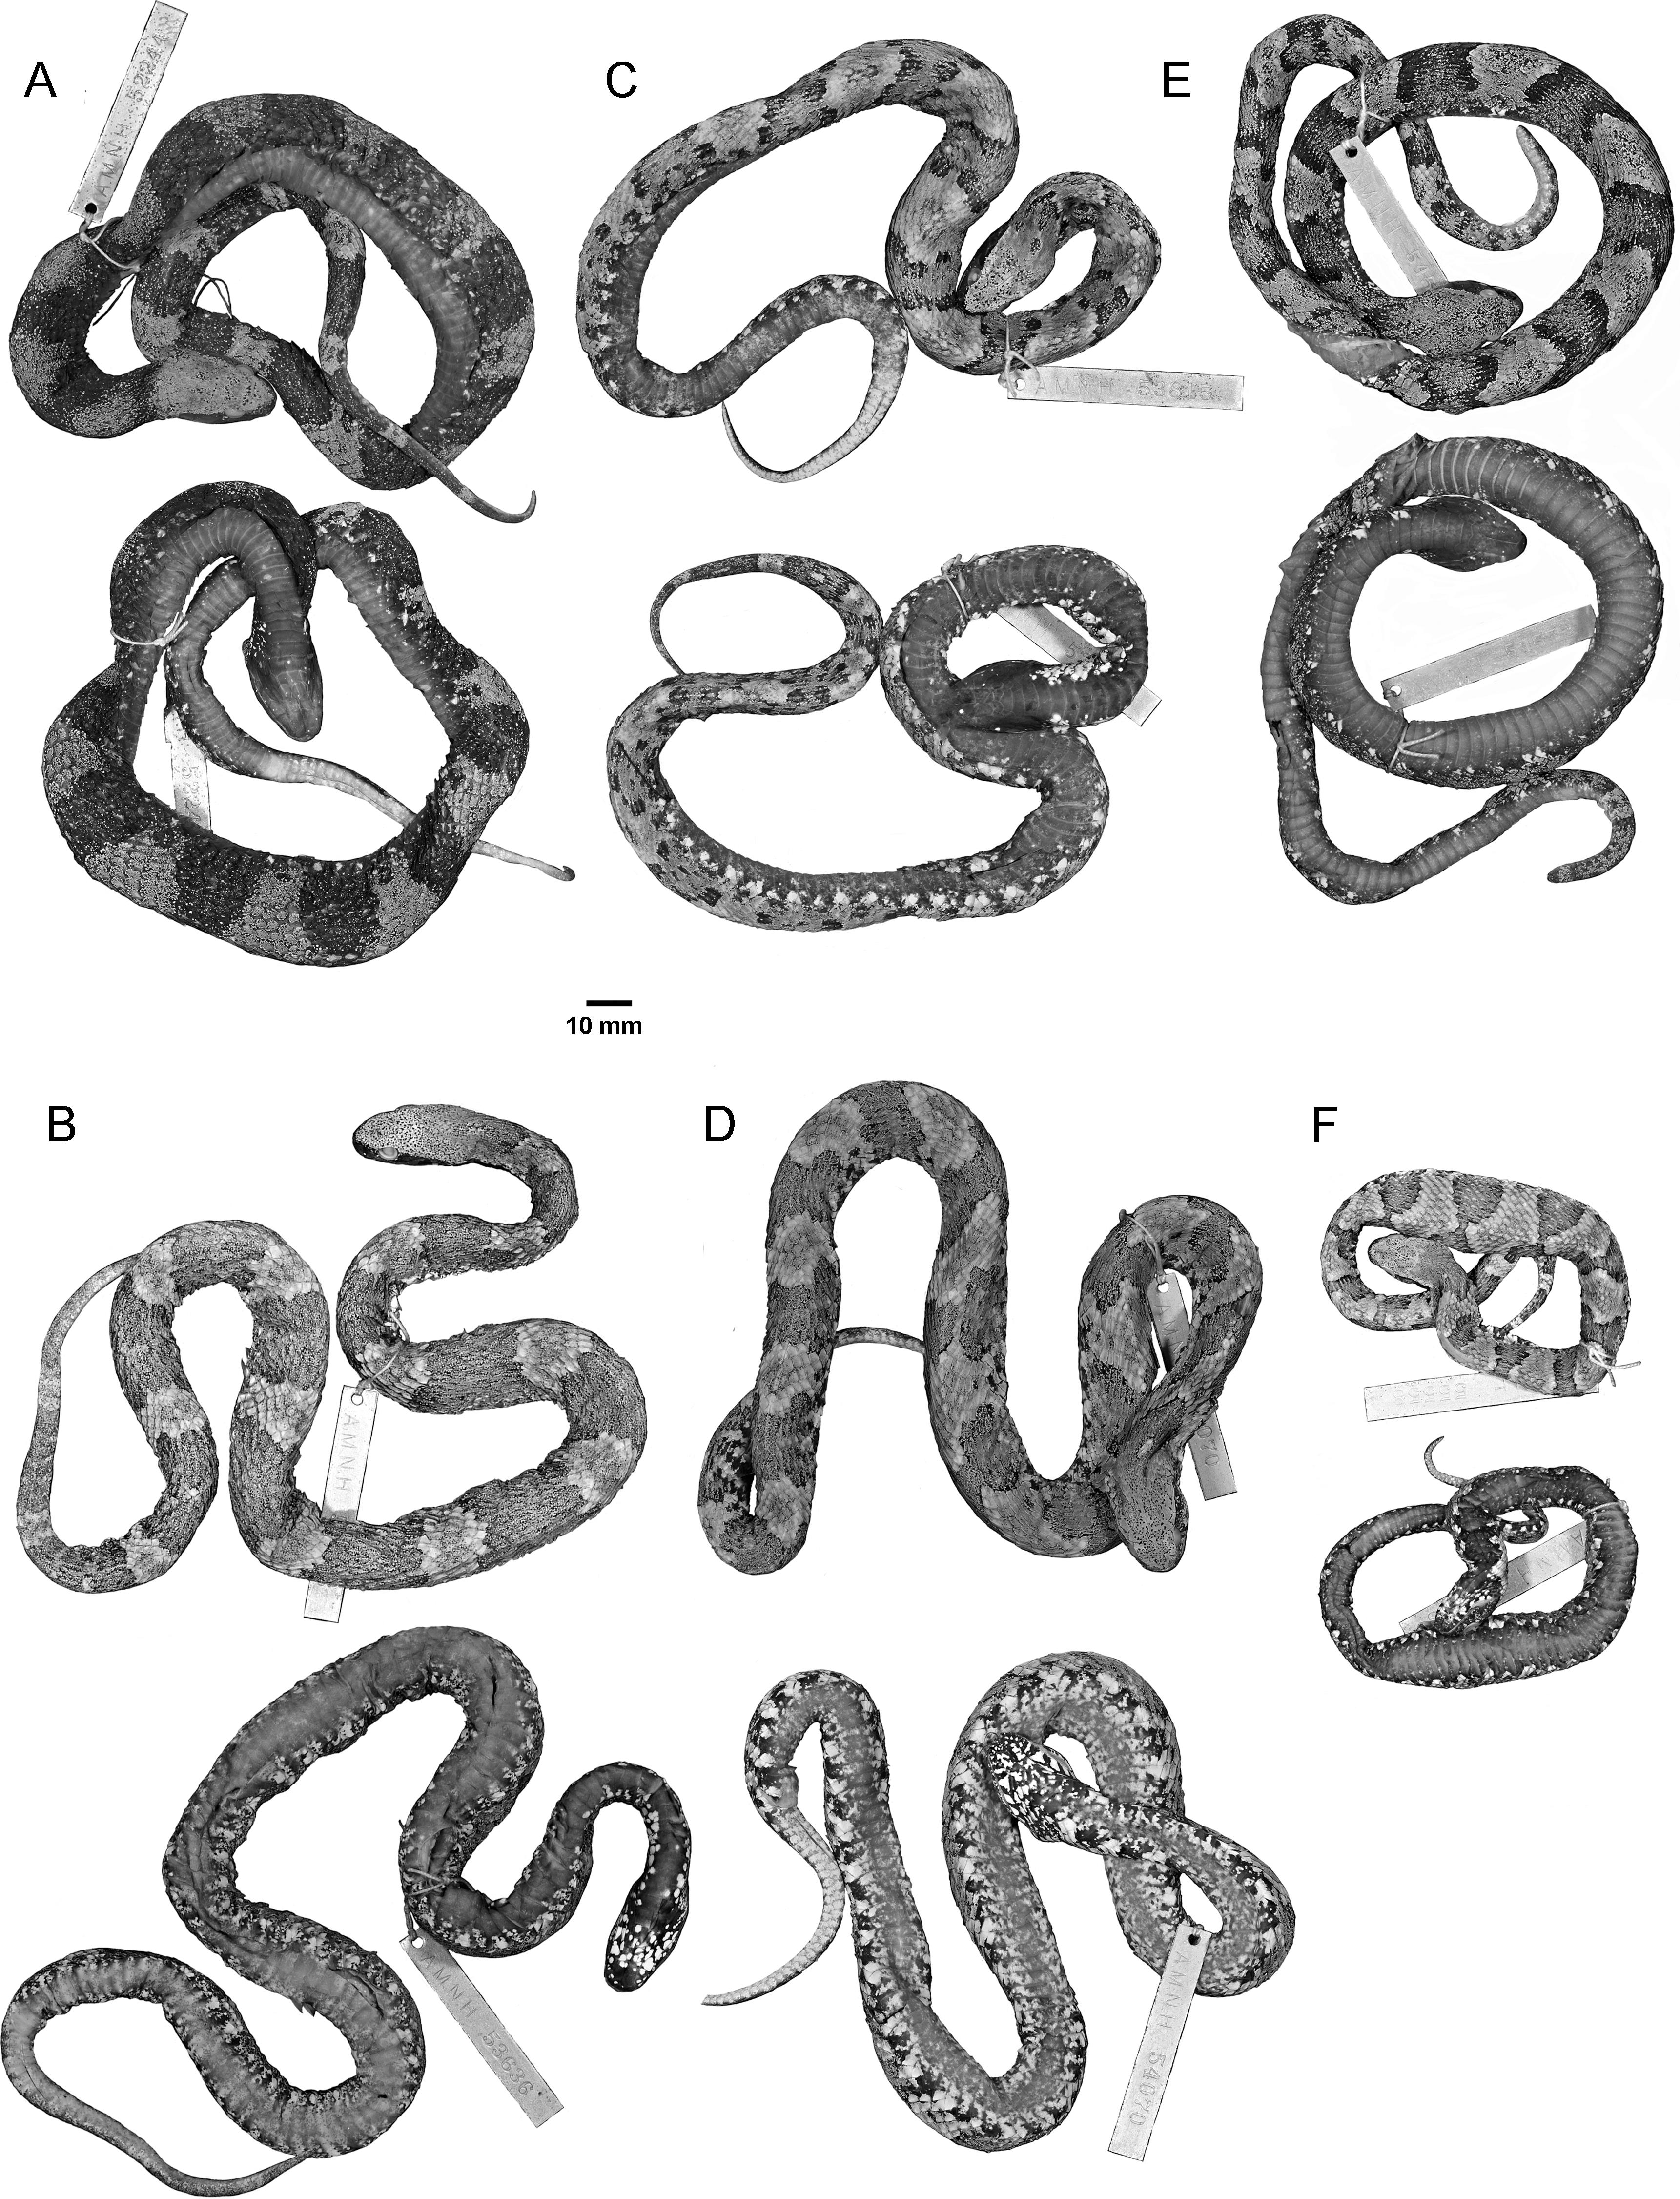 The two taxa appear to be mainly if not entirely allopatric although rabdocephalus is a complex of sibling species